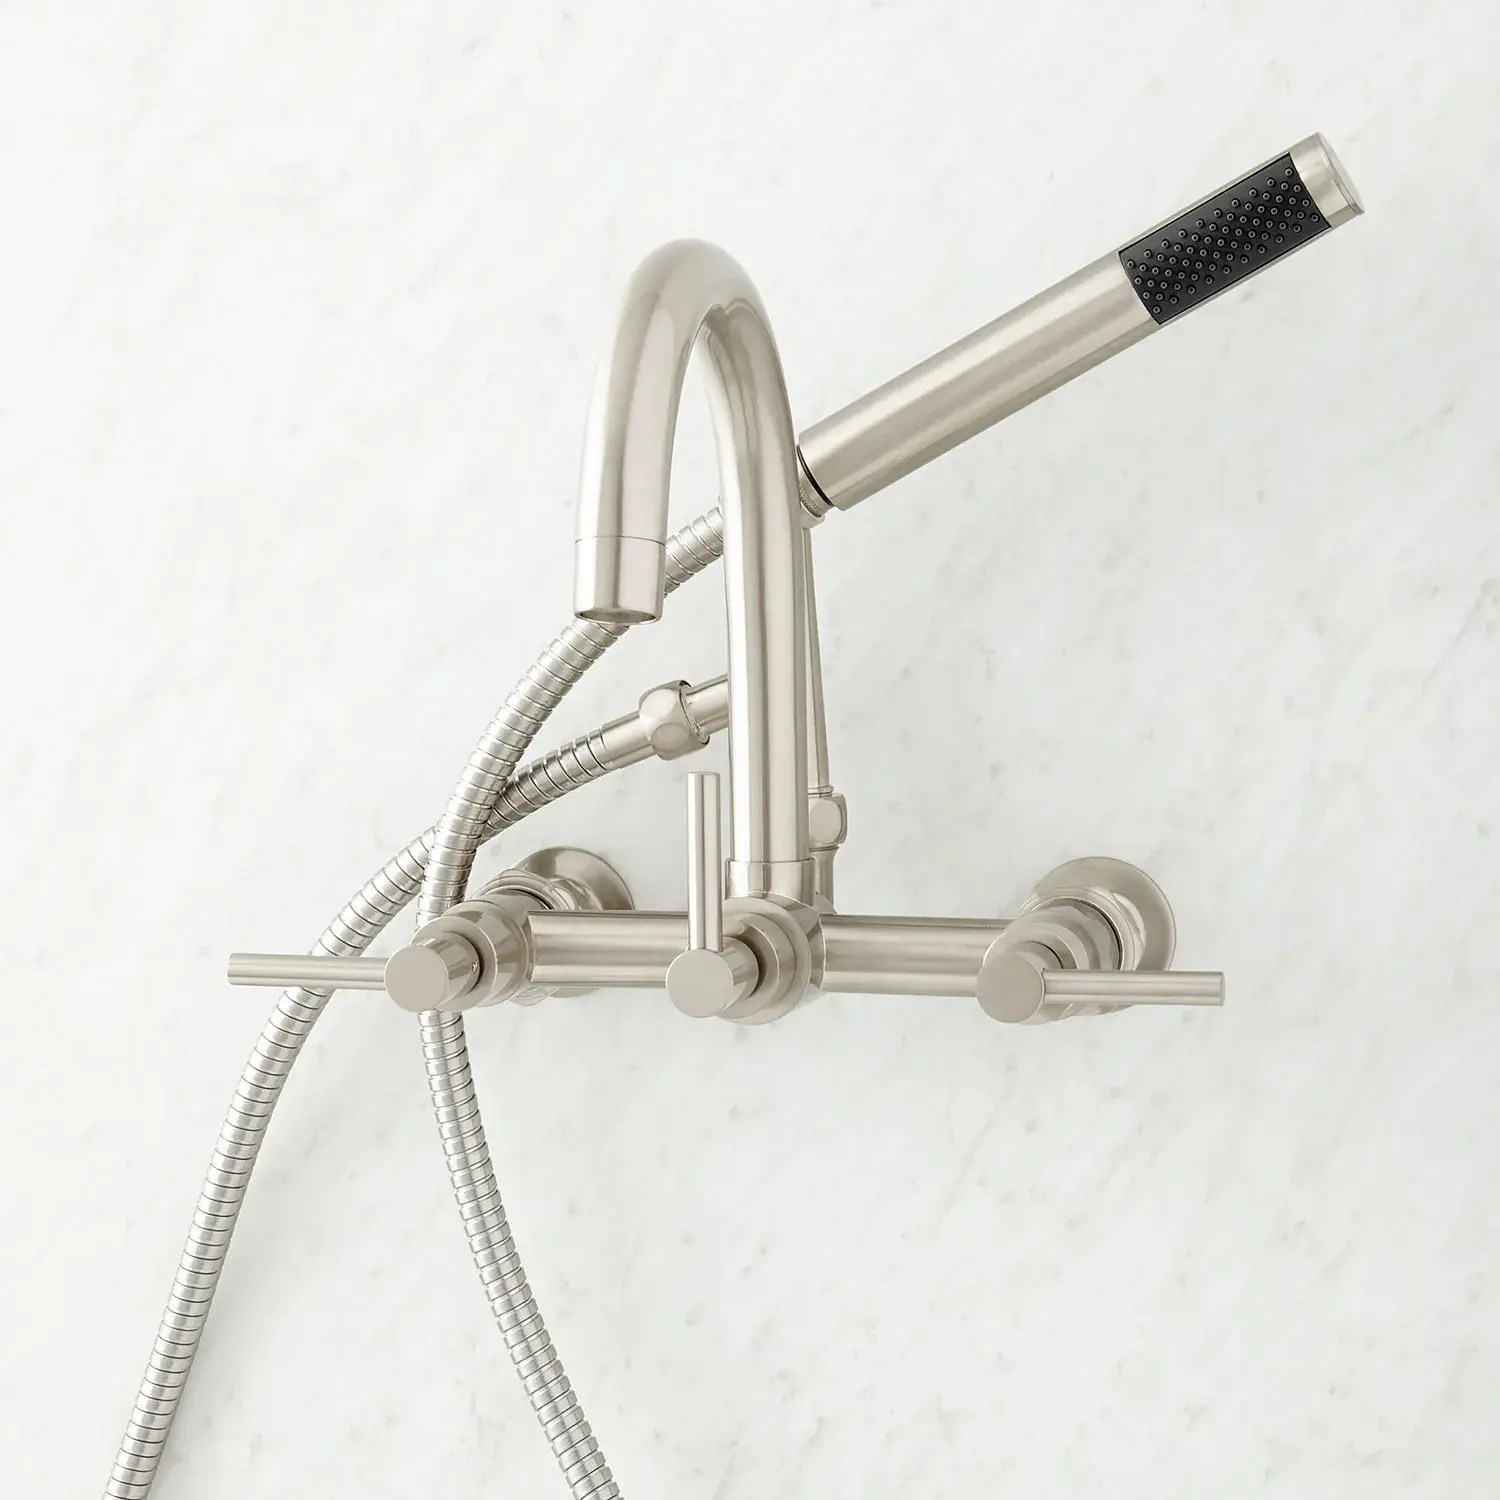 sebastian wall mount tub faucet with lever handles and wall couplers